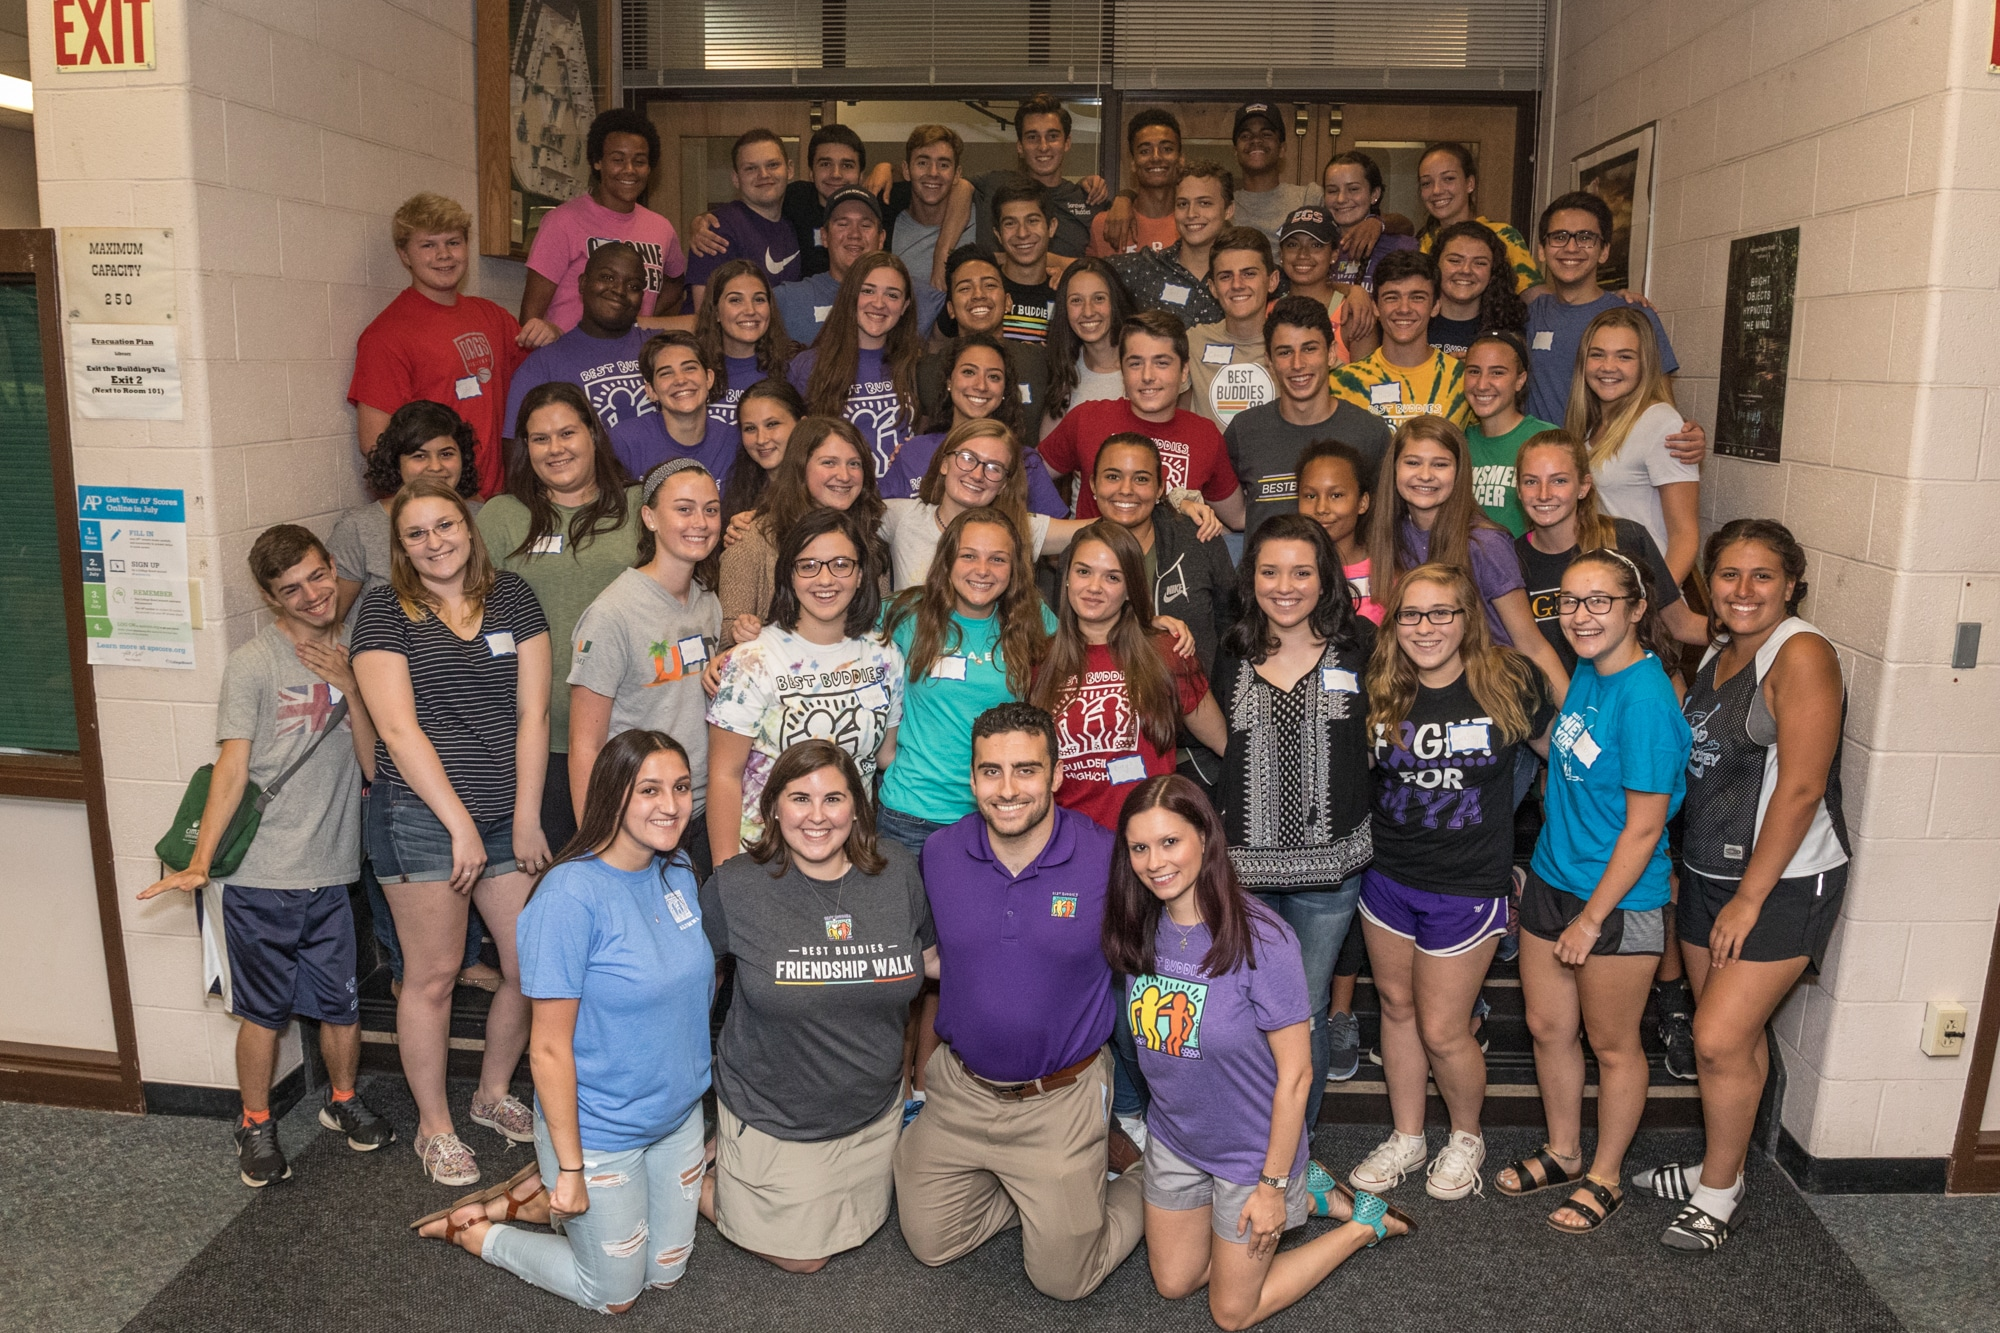 75 Students Leaders Attend Best Buddies Local Leadership Training Day